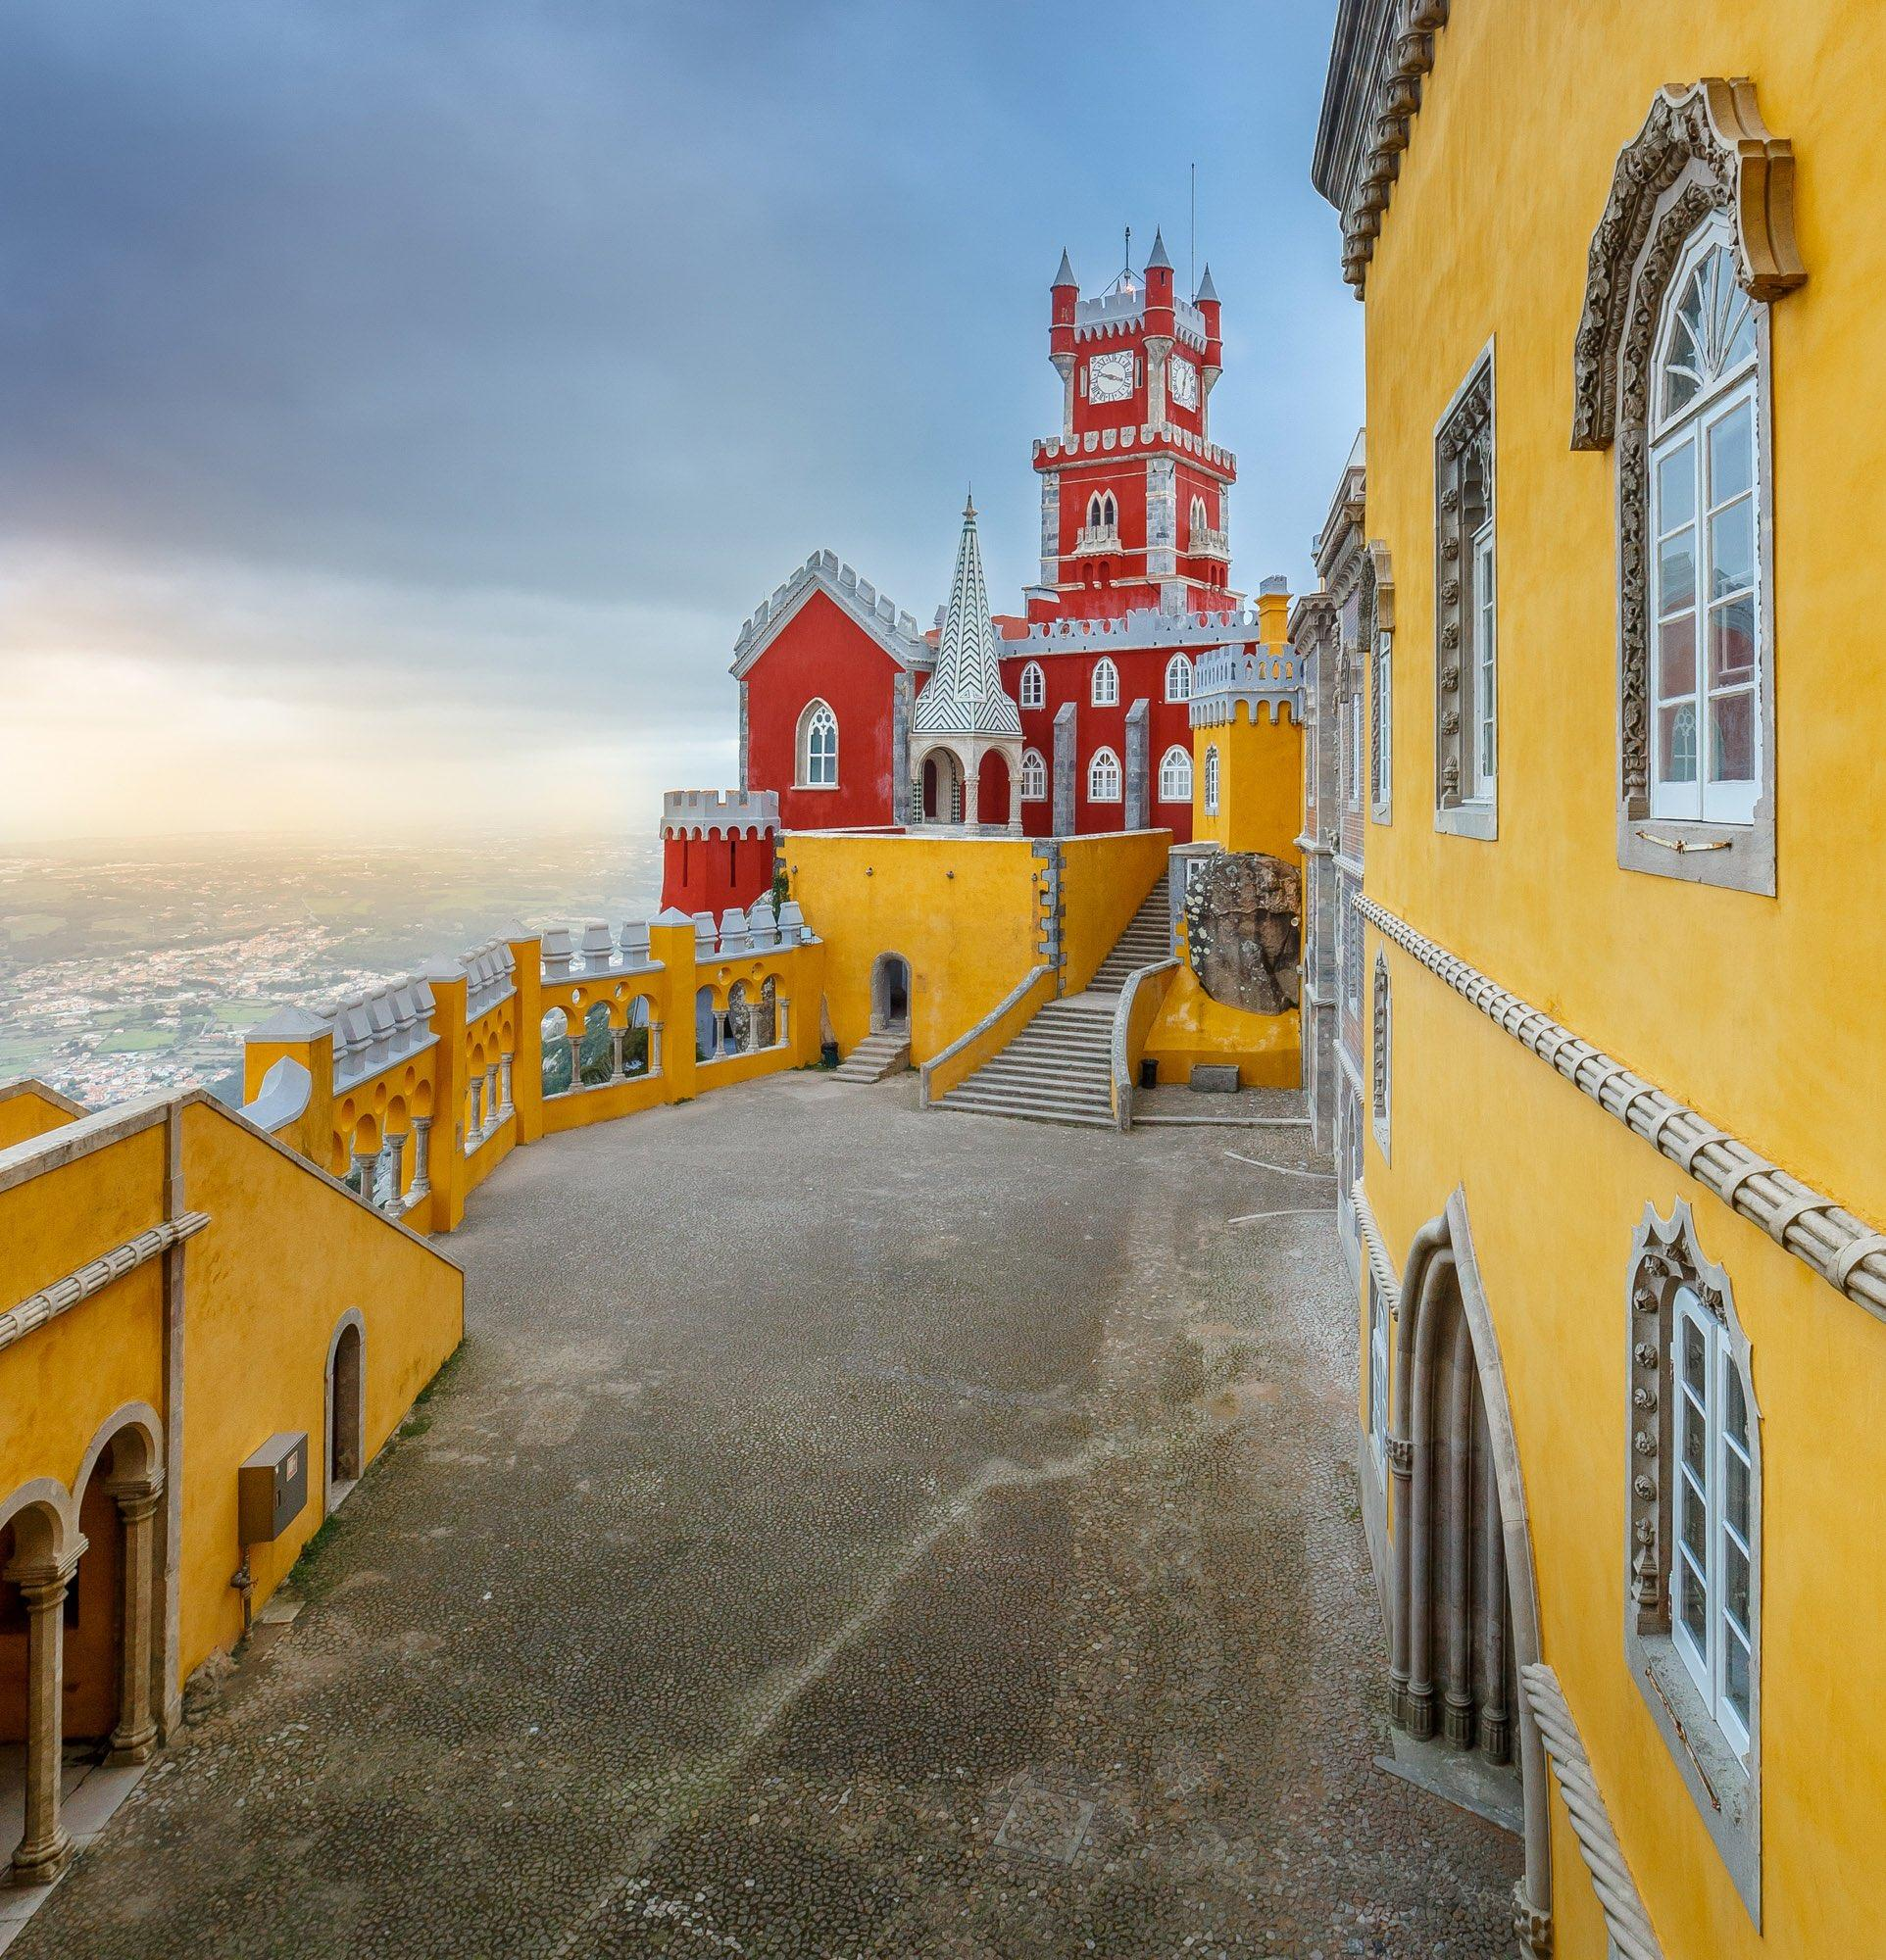 The colourful Pena Palace and the views from its balconies are a highlight of any visit to Sintra – © PSML / EMIGUS